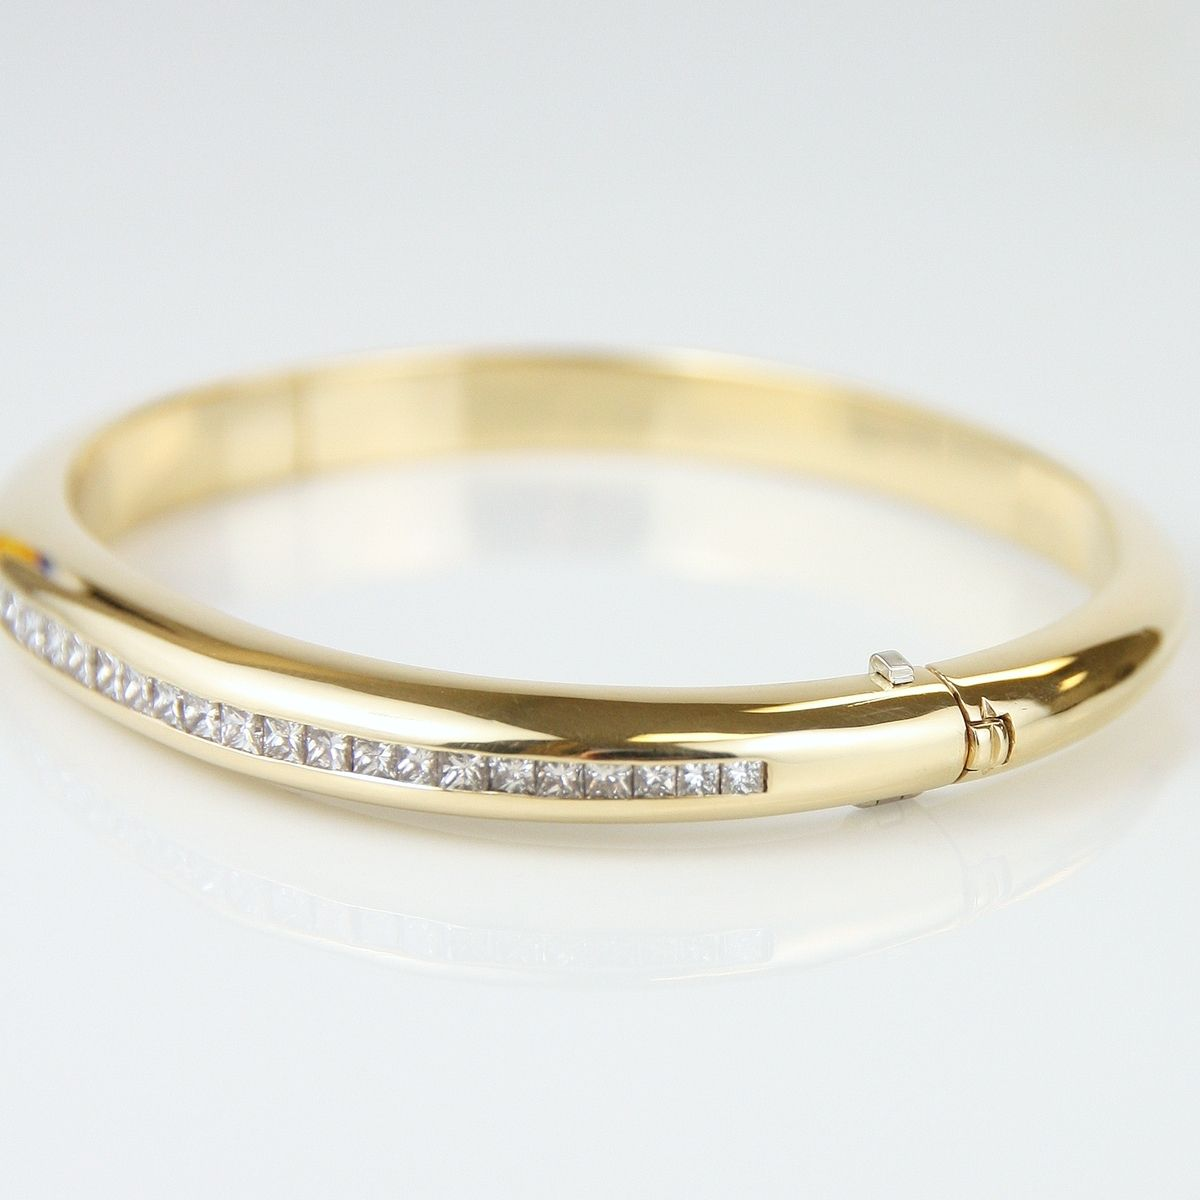 Hand Made Elegant 18kt Yellow Gold And Diamond Bangle ...